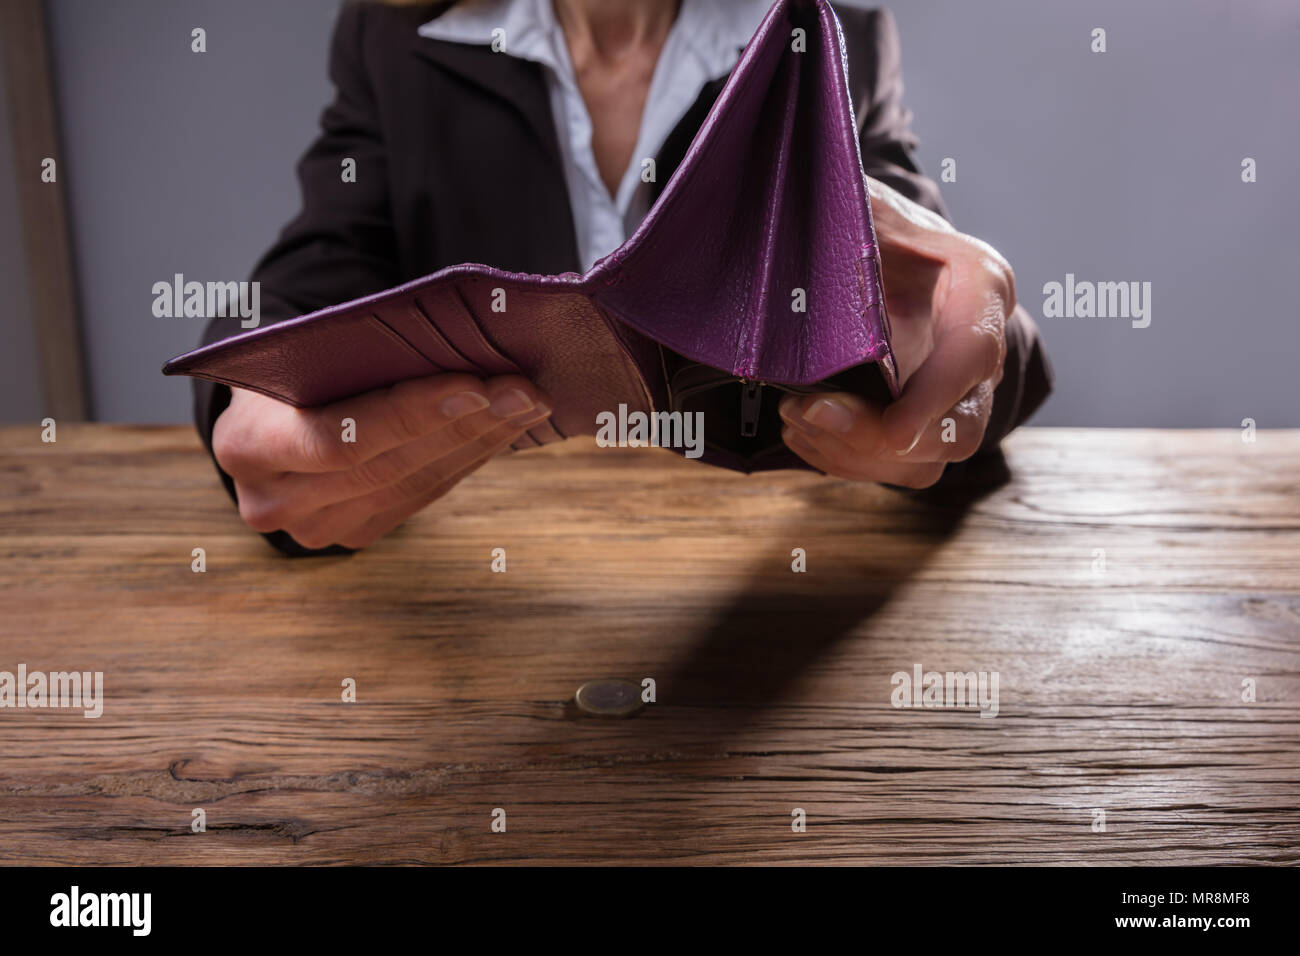 Close-up Of A Businessperson's Hand Holding Empty Purse Over Wooden Desk Stock Photo